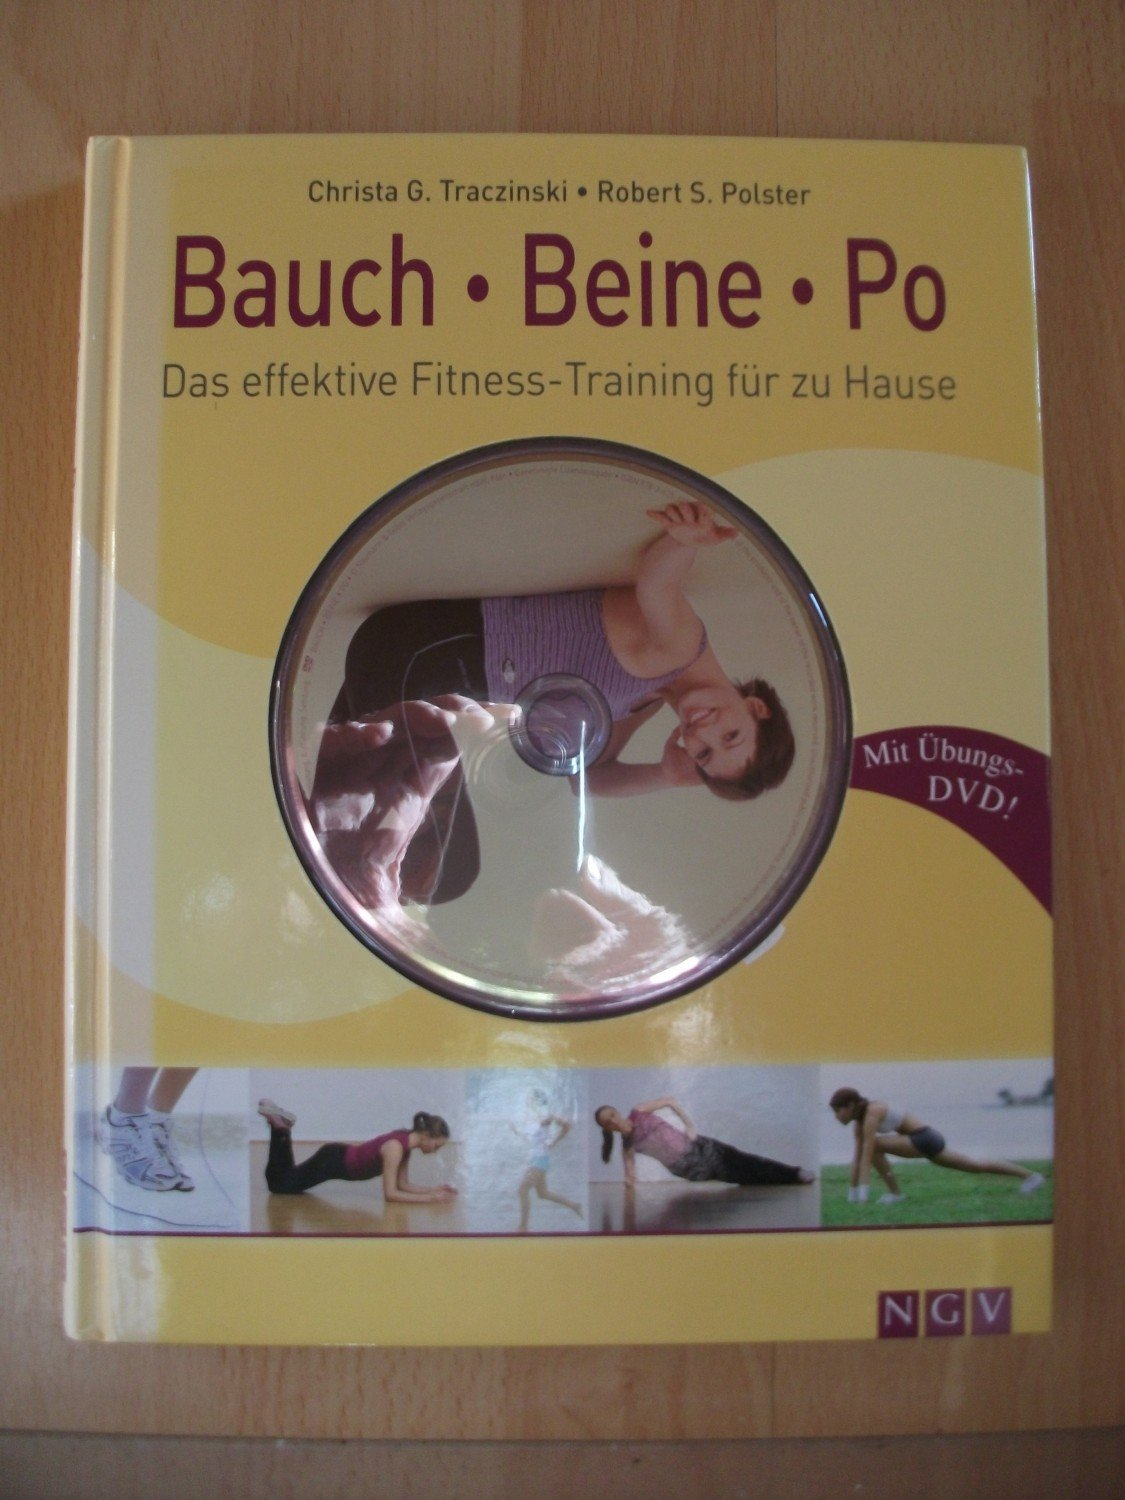 isbn 9783625123811 bauch beine po das effektive fitness training f r zu hause mit bungs dvd. Black Bedroom Furniture Sets. Home Design Ideas